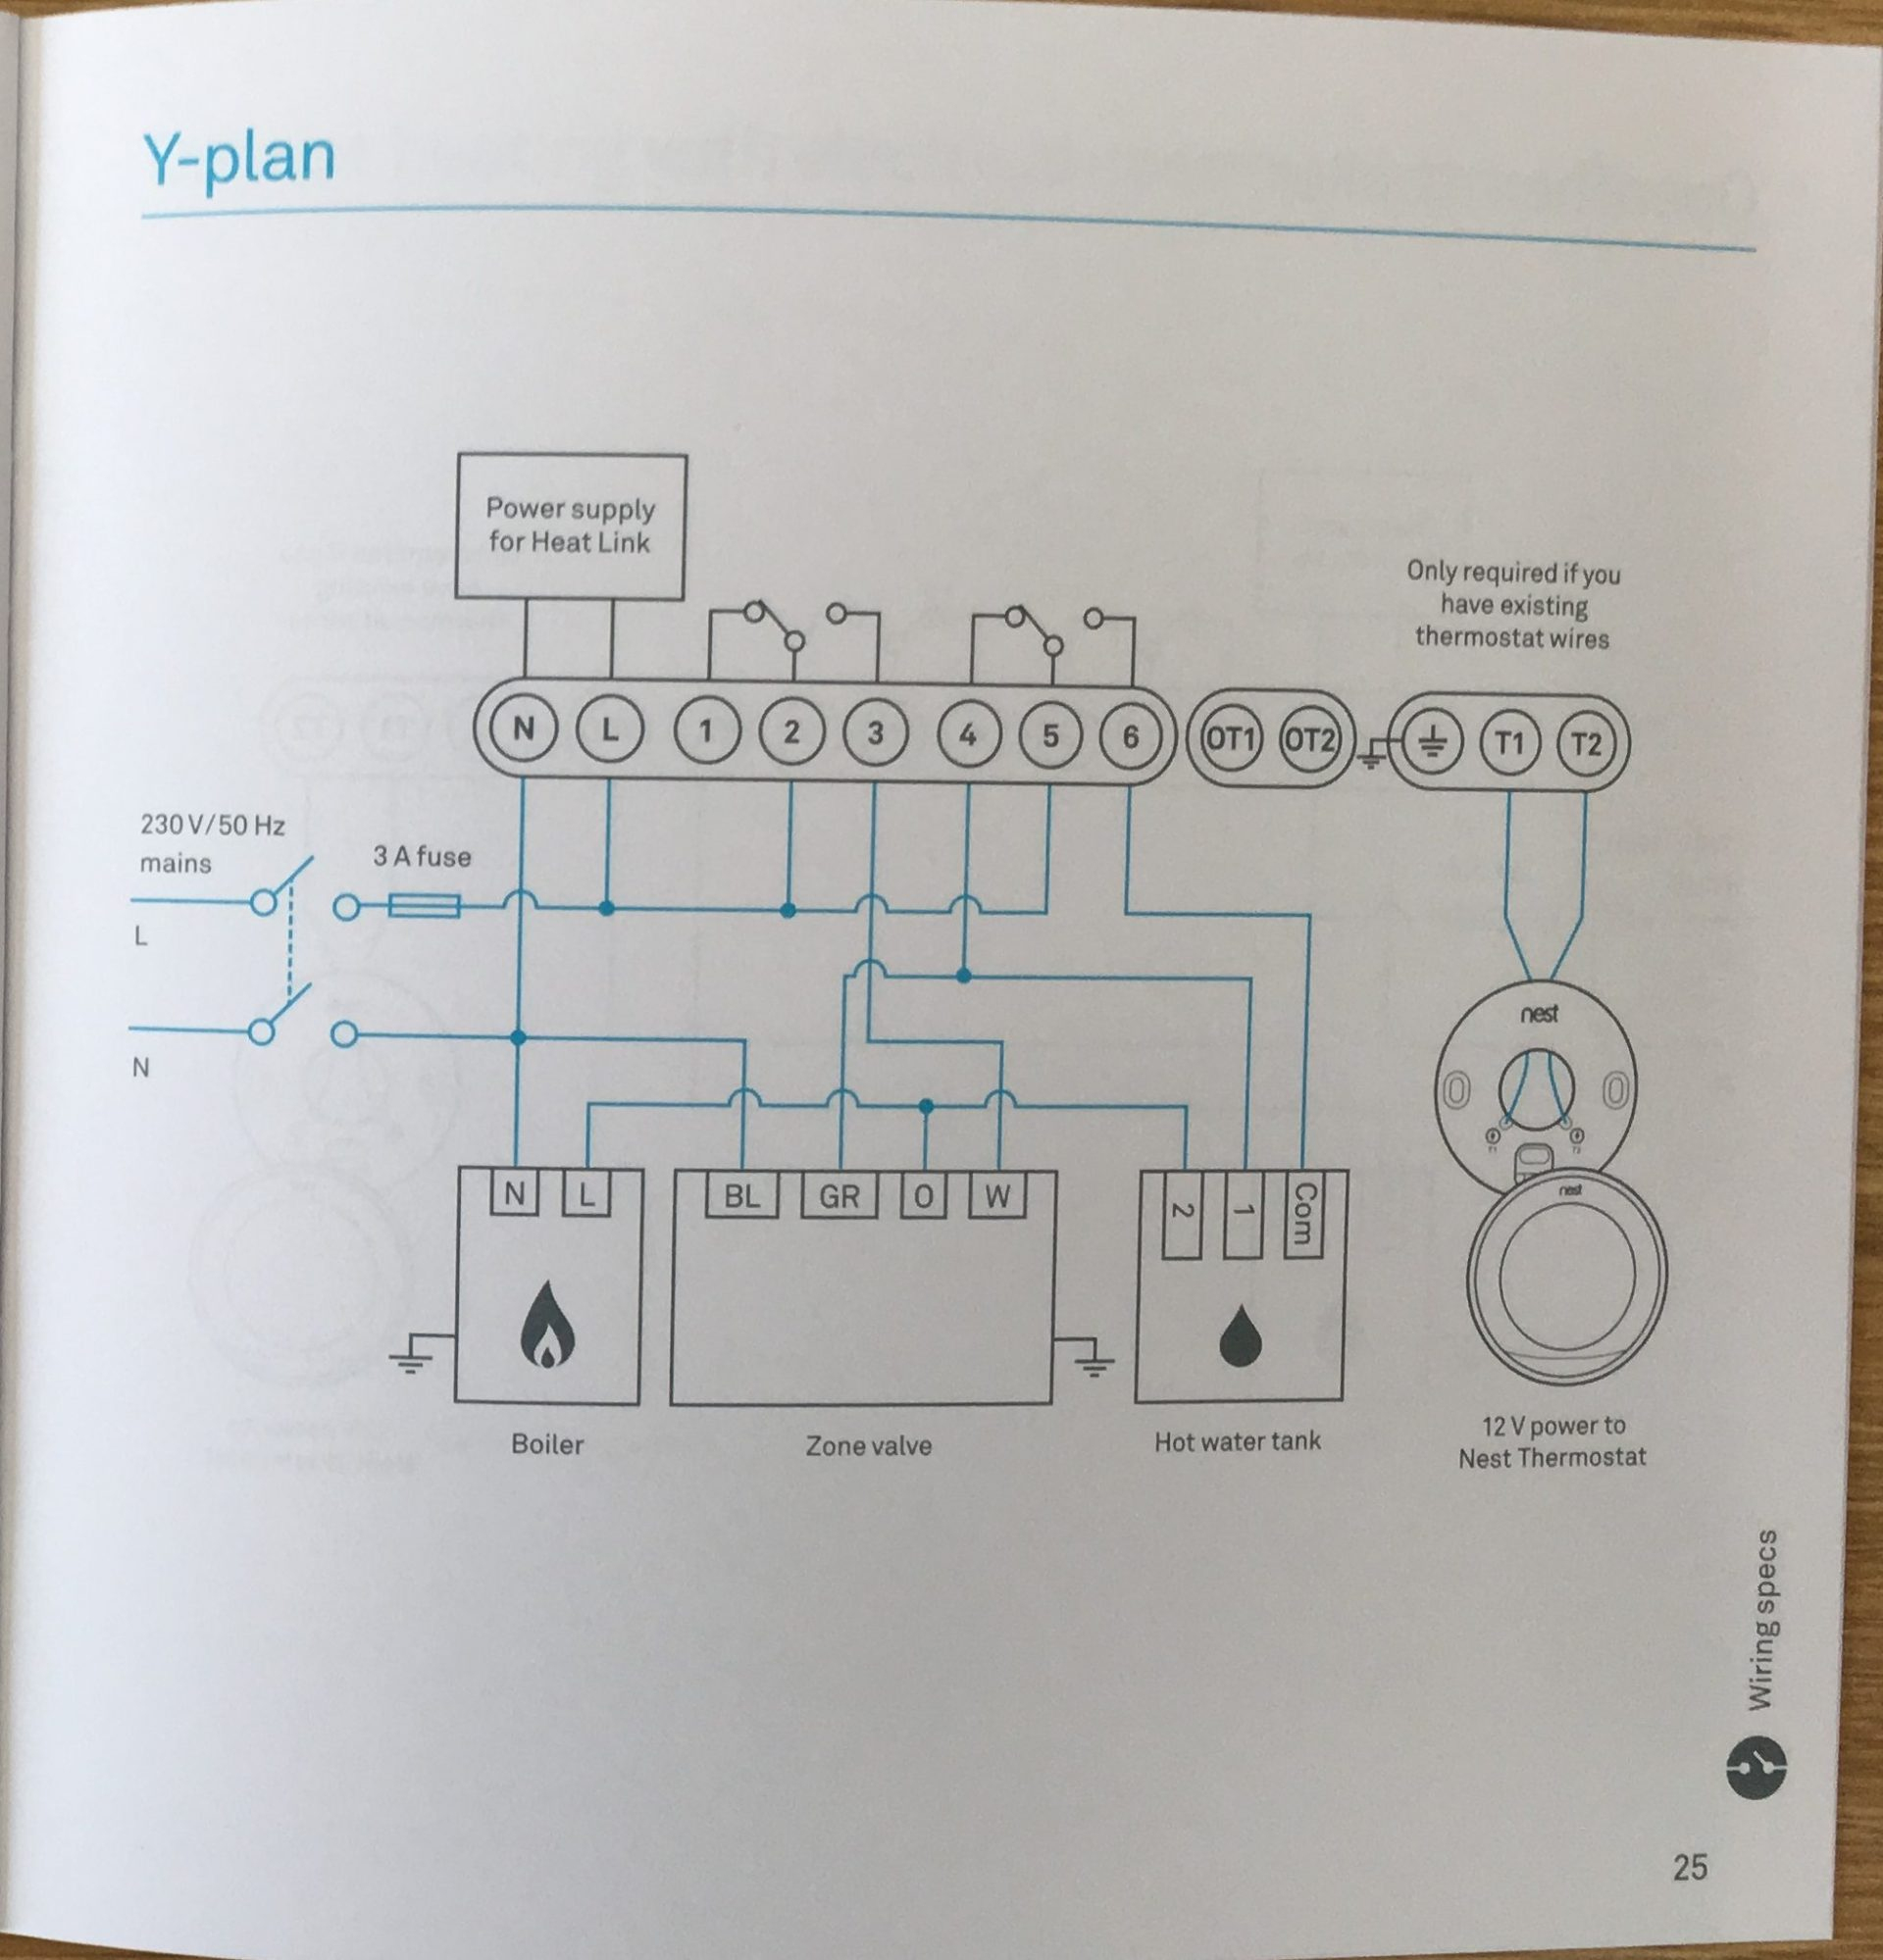 How To Install The Nest Learning Thermostat (3Rd Gen) In A Y-Plan - Wiring Diagram Nest Model 02A